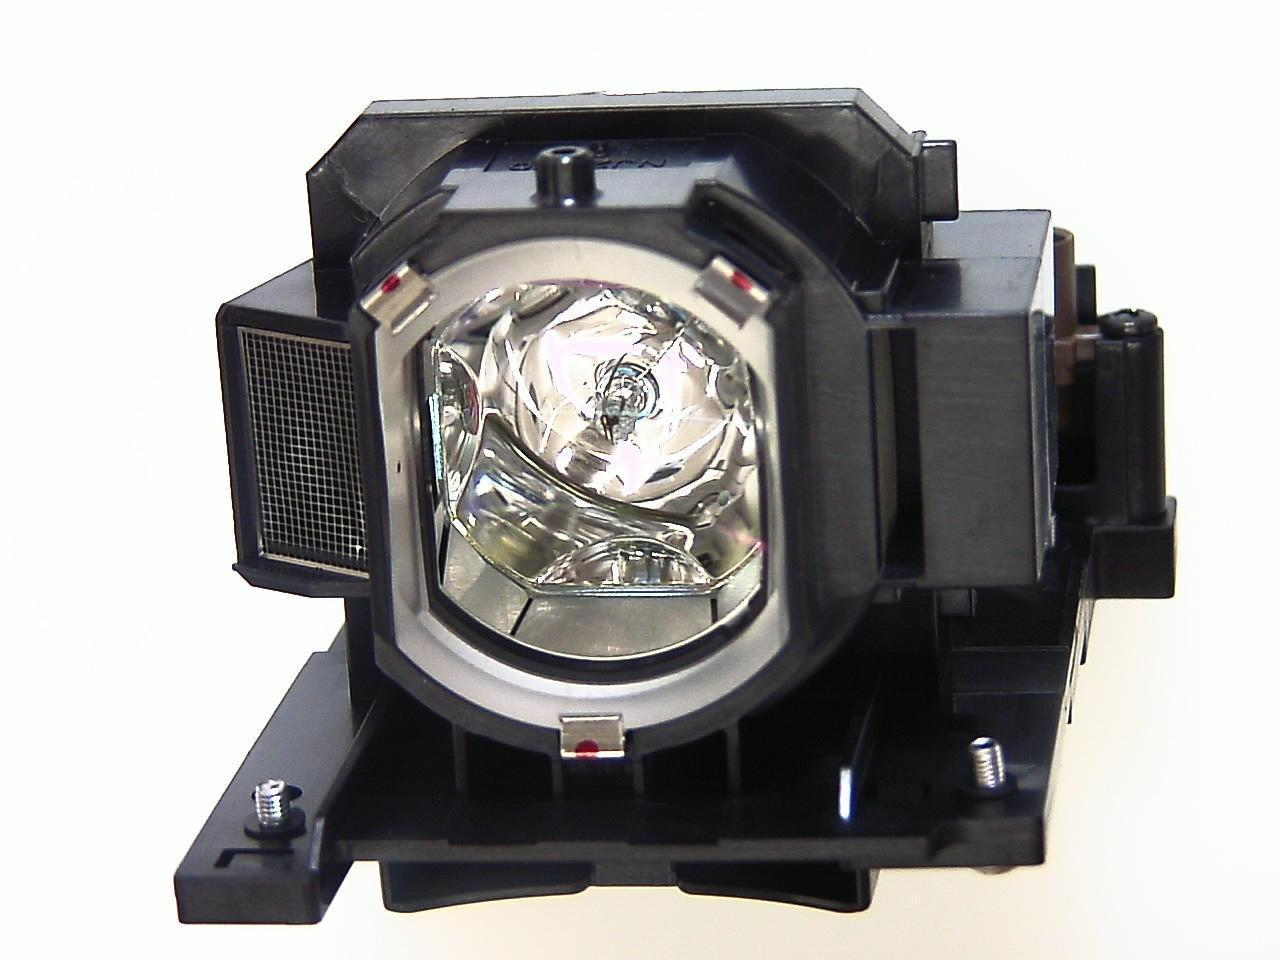 Hitachi DT01121 projection lamp